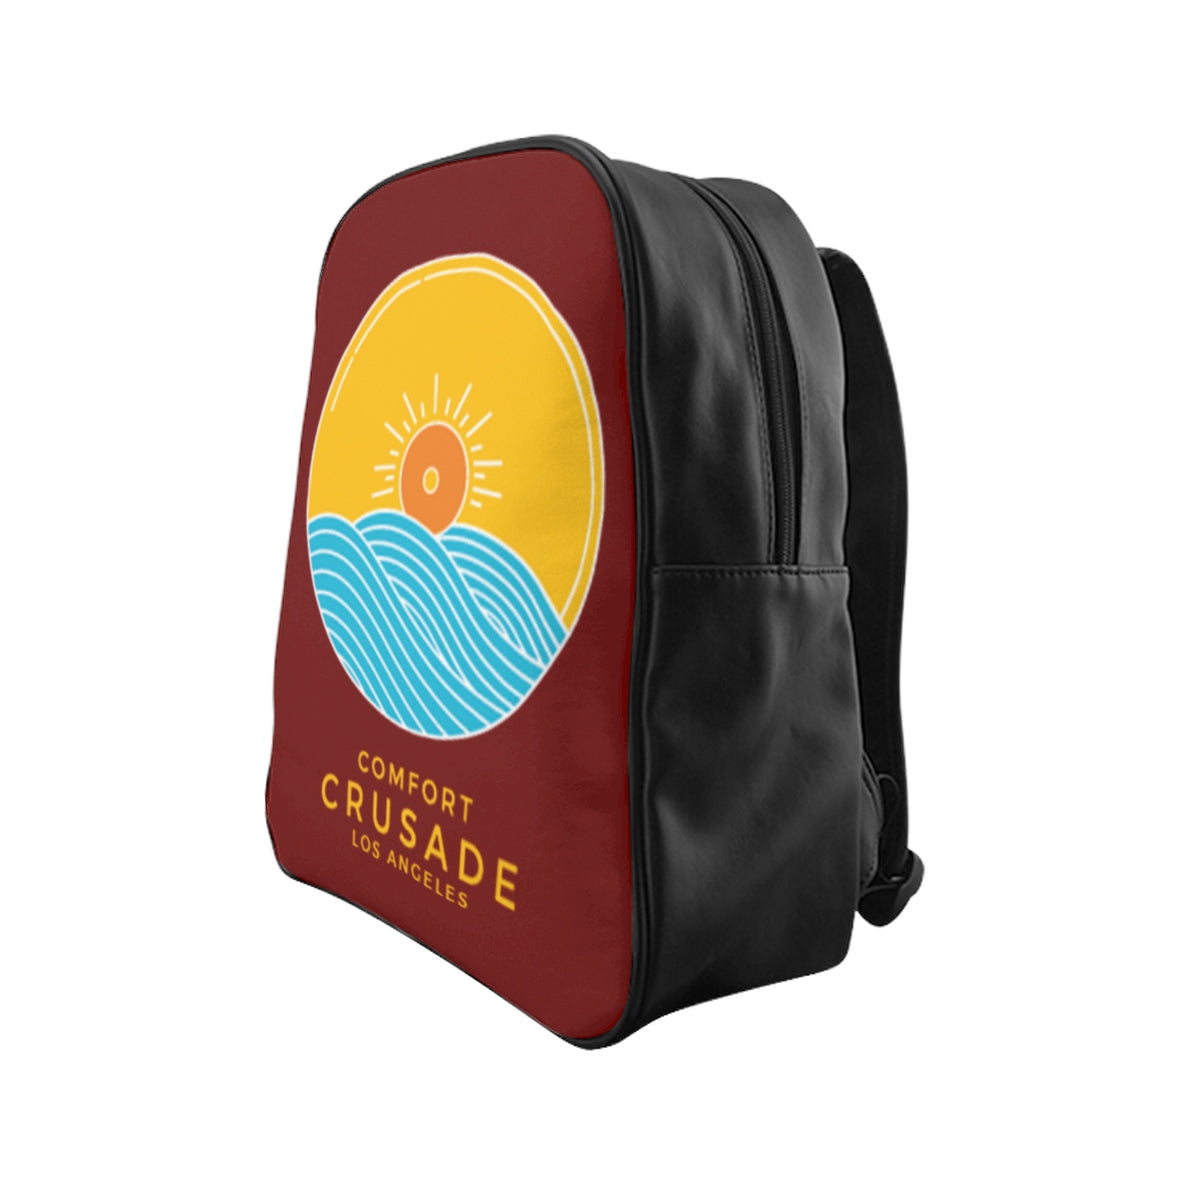 Comfort Crusade Malbec Red Utility Backpack - The Comfort Crusade Shopping Lounge